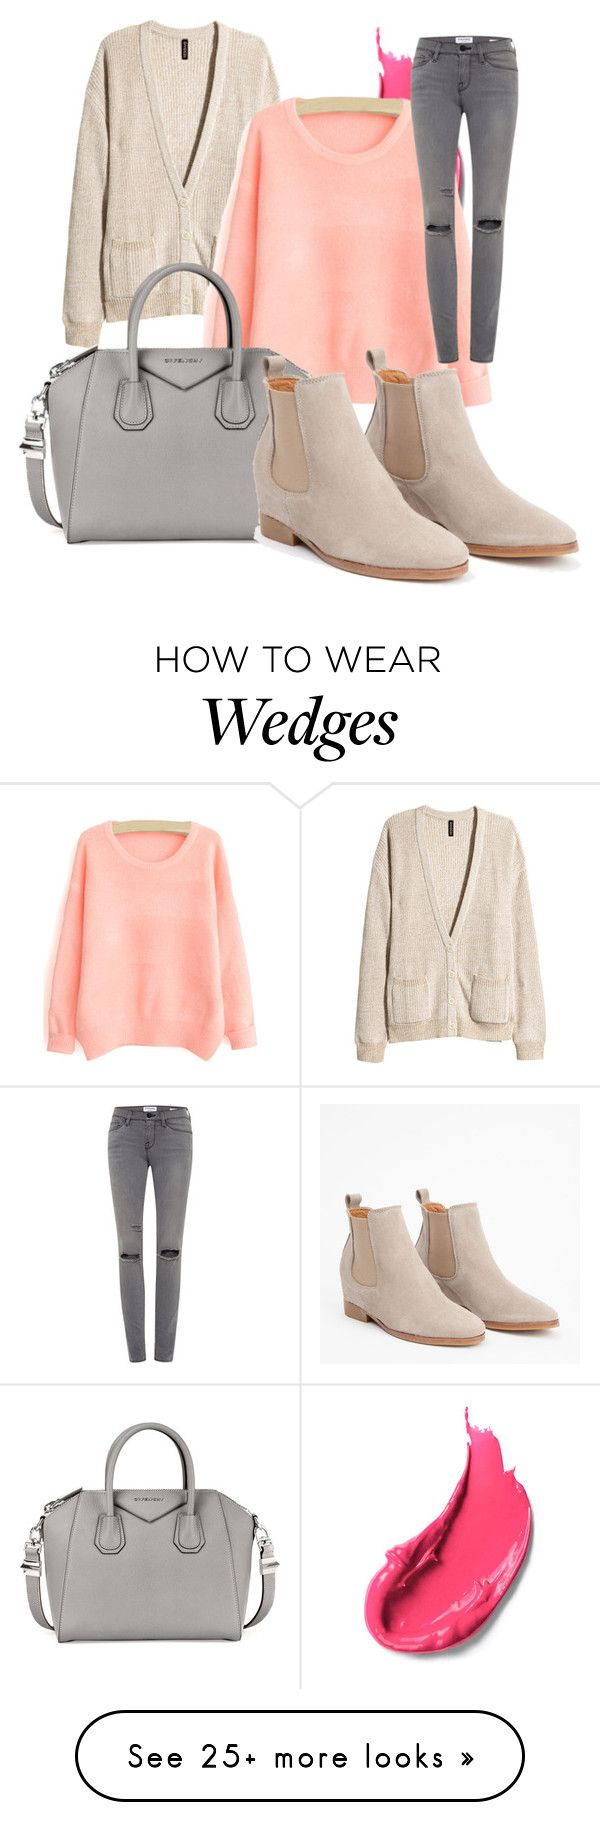 """""""Untitled #282"""" by samyalltheway on Polyvore featuring H&M, Givenchy and Frame Denim"""